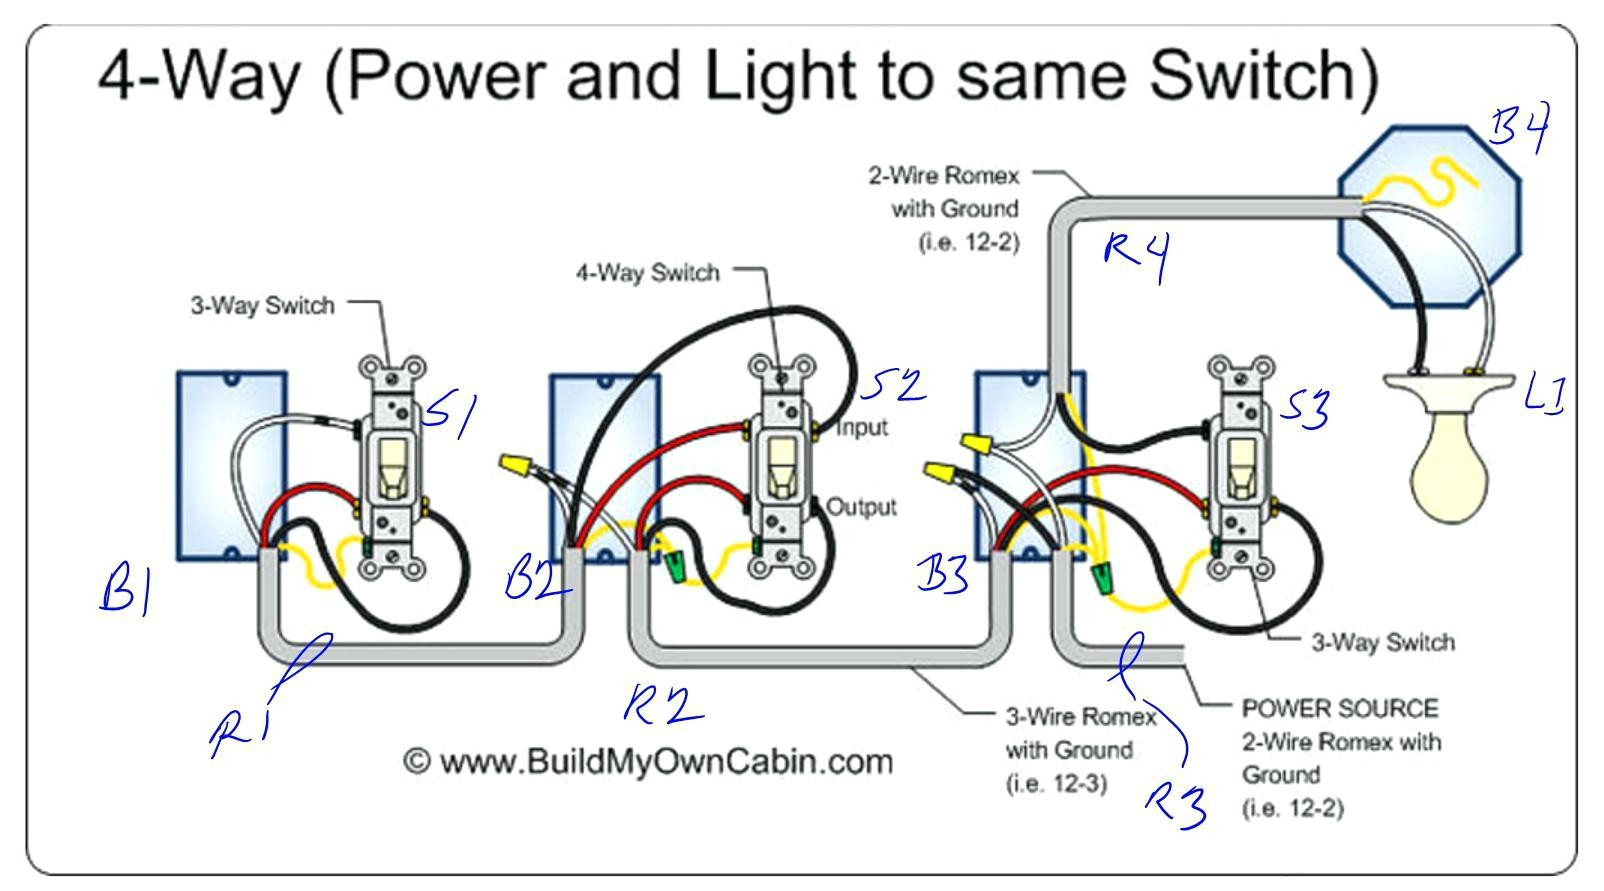 4 Way Switch Wiring Diagram 220 - DIY Wiring Diagrams •